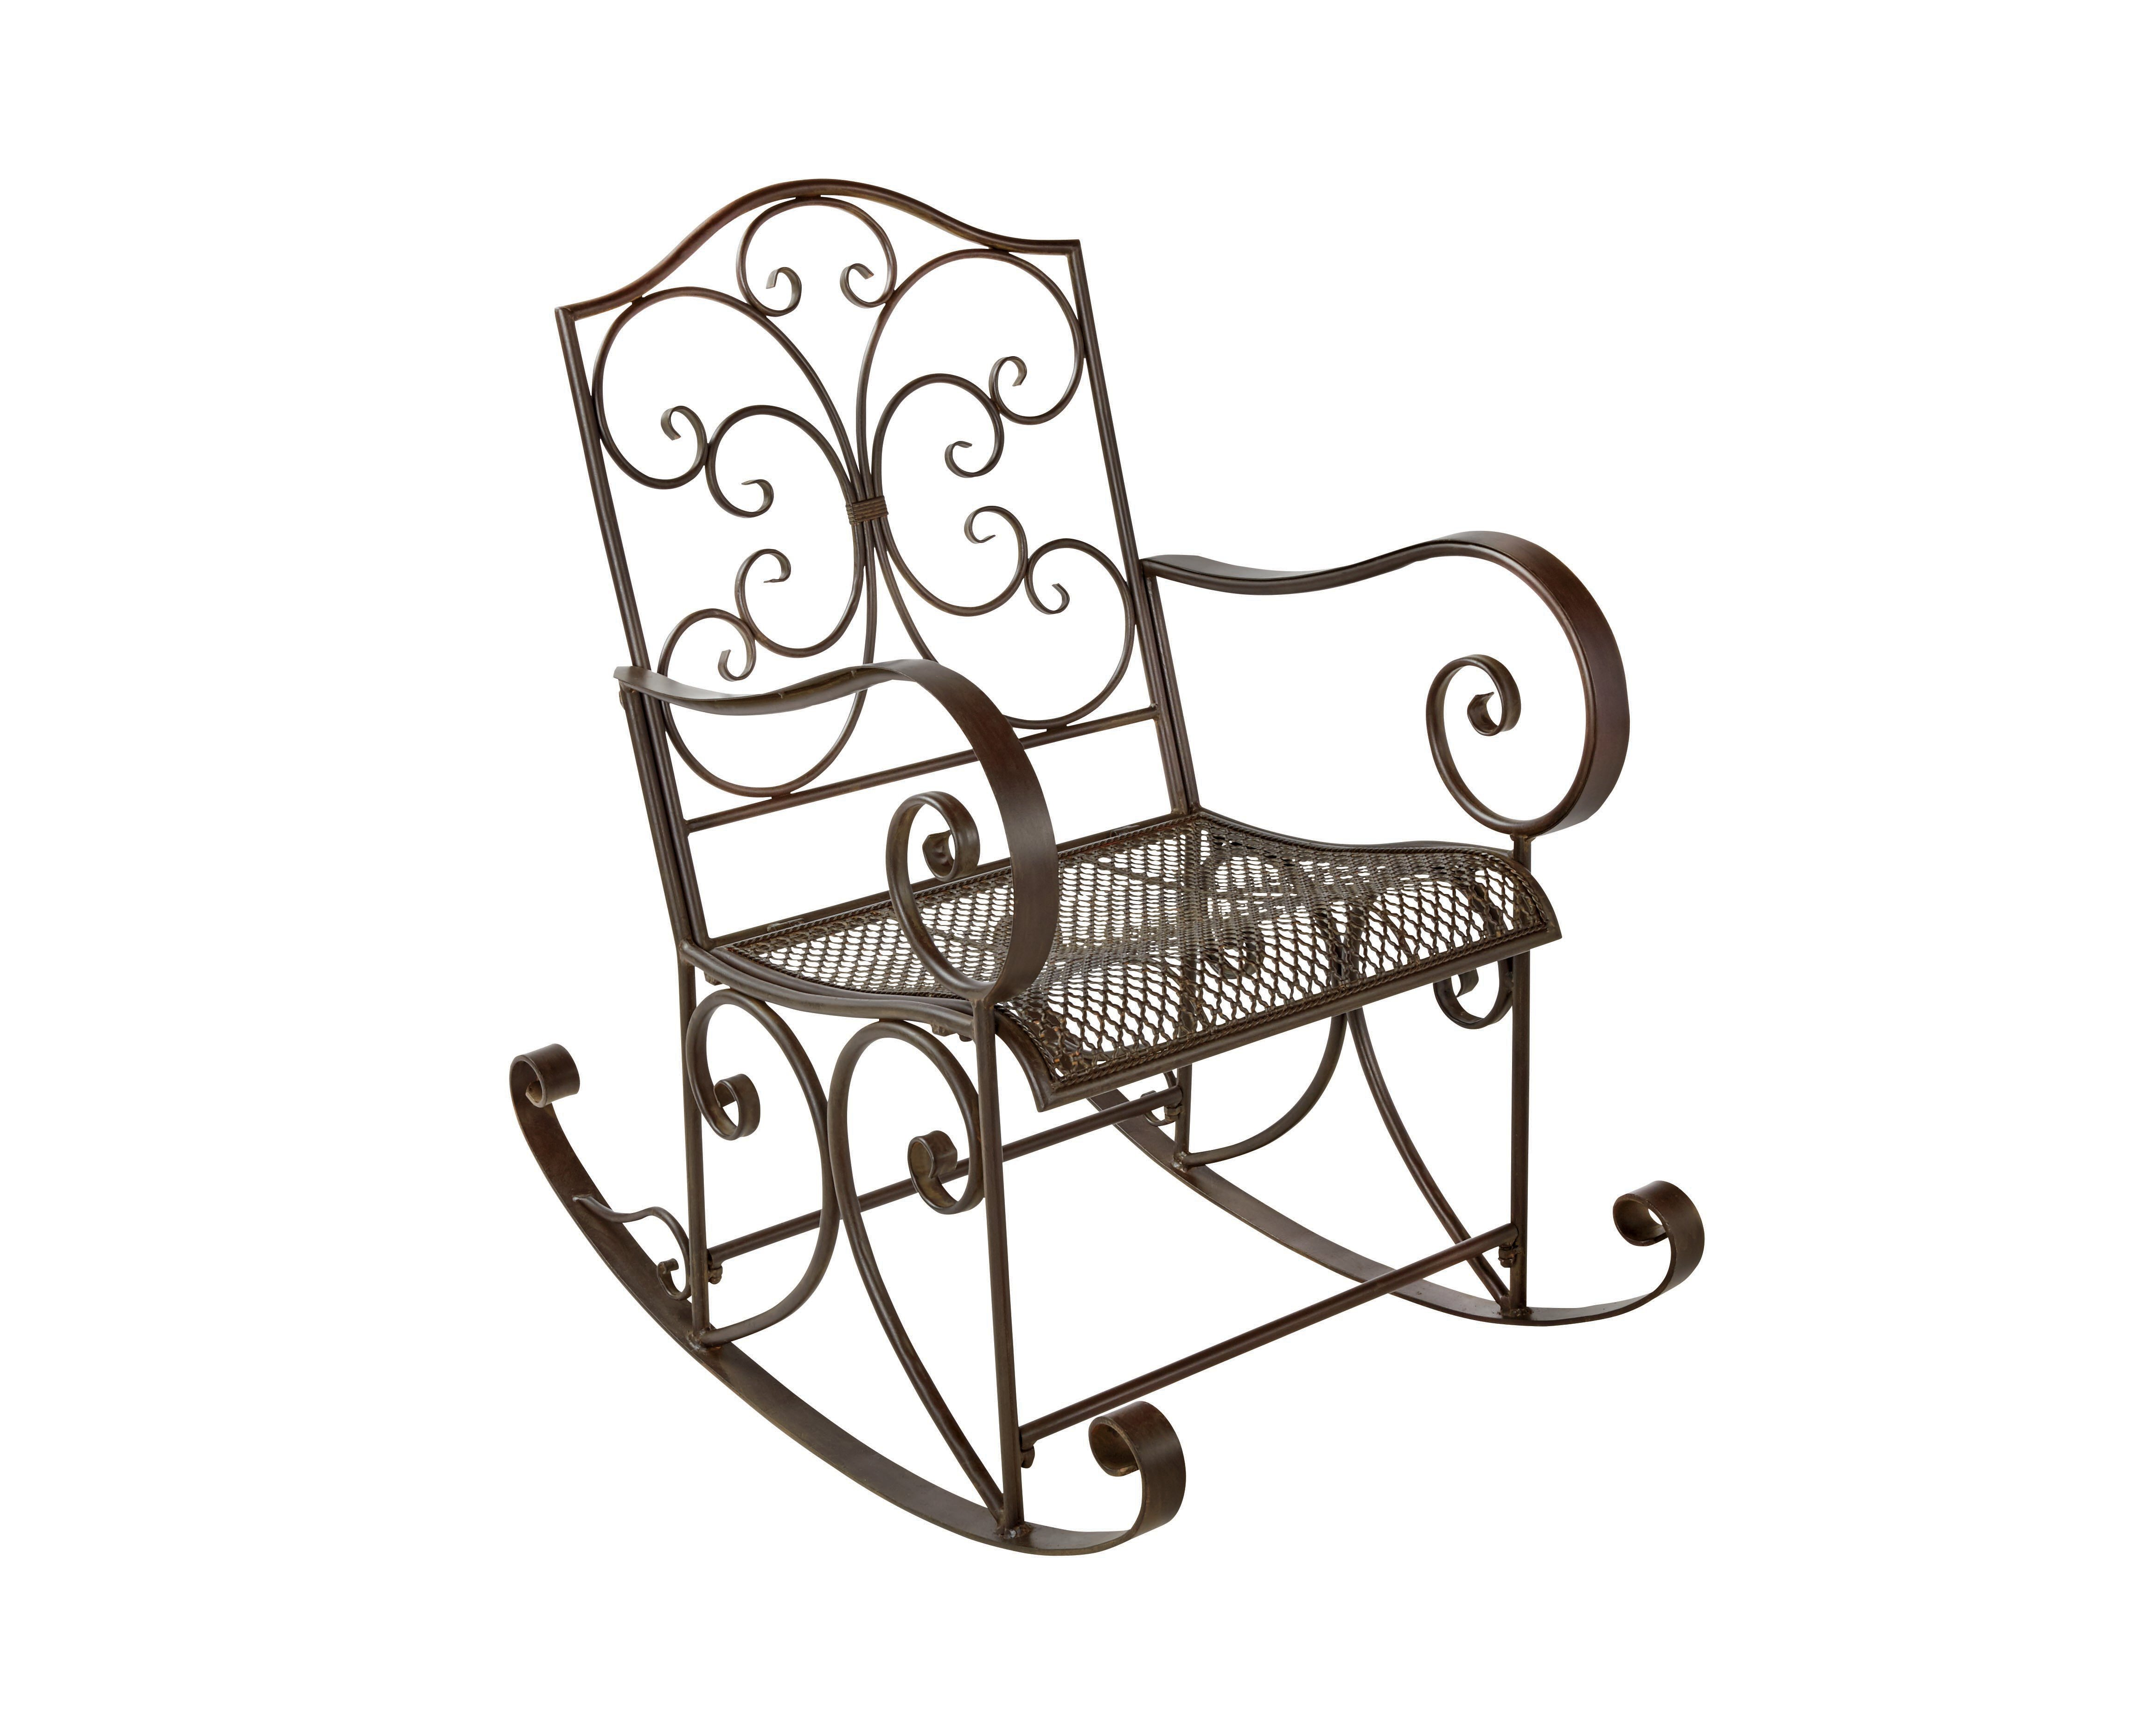 Texas Style Rocking Chair Shop Furniture at HEB